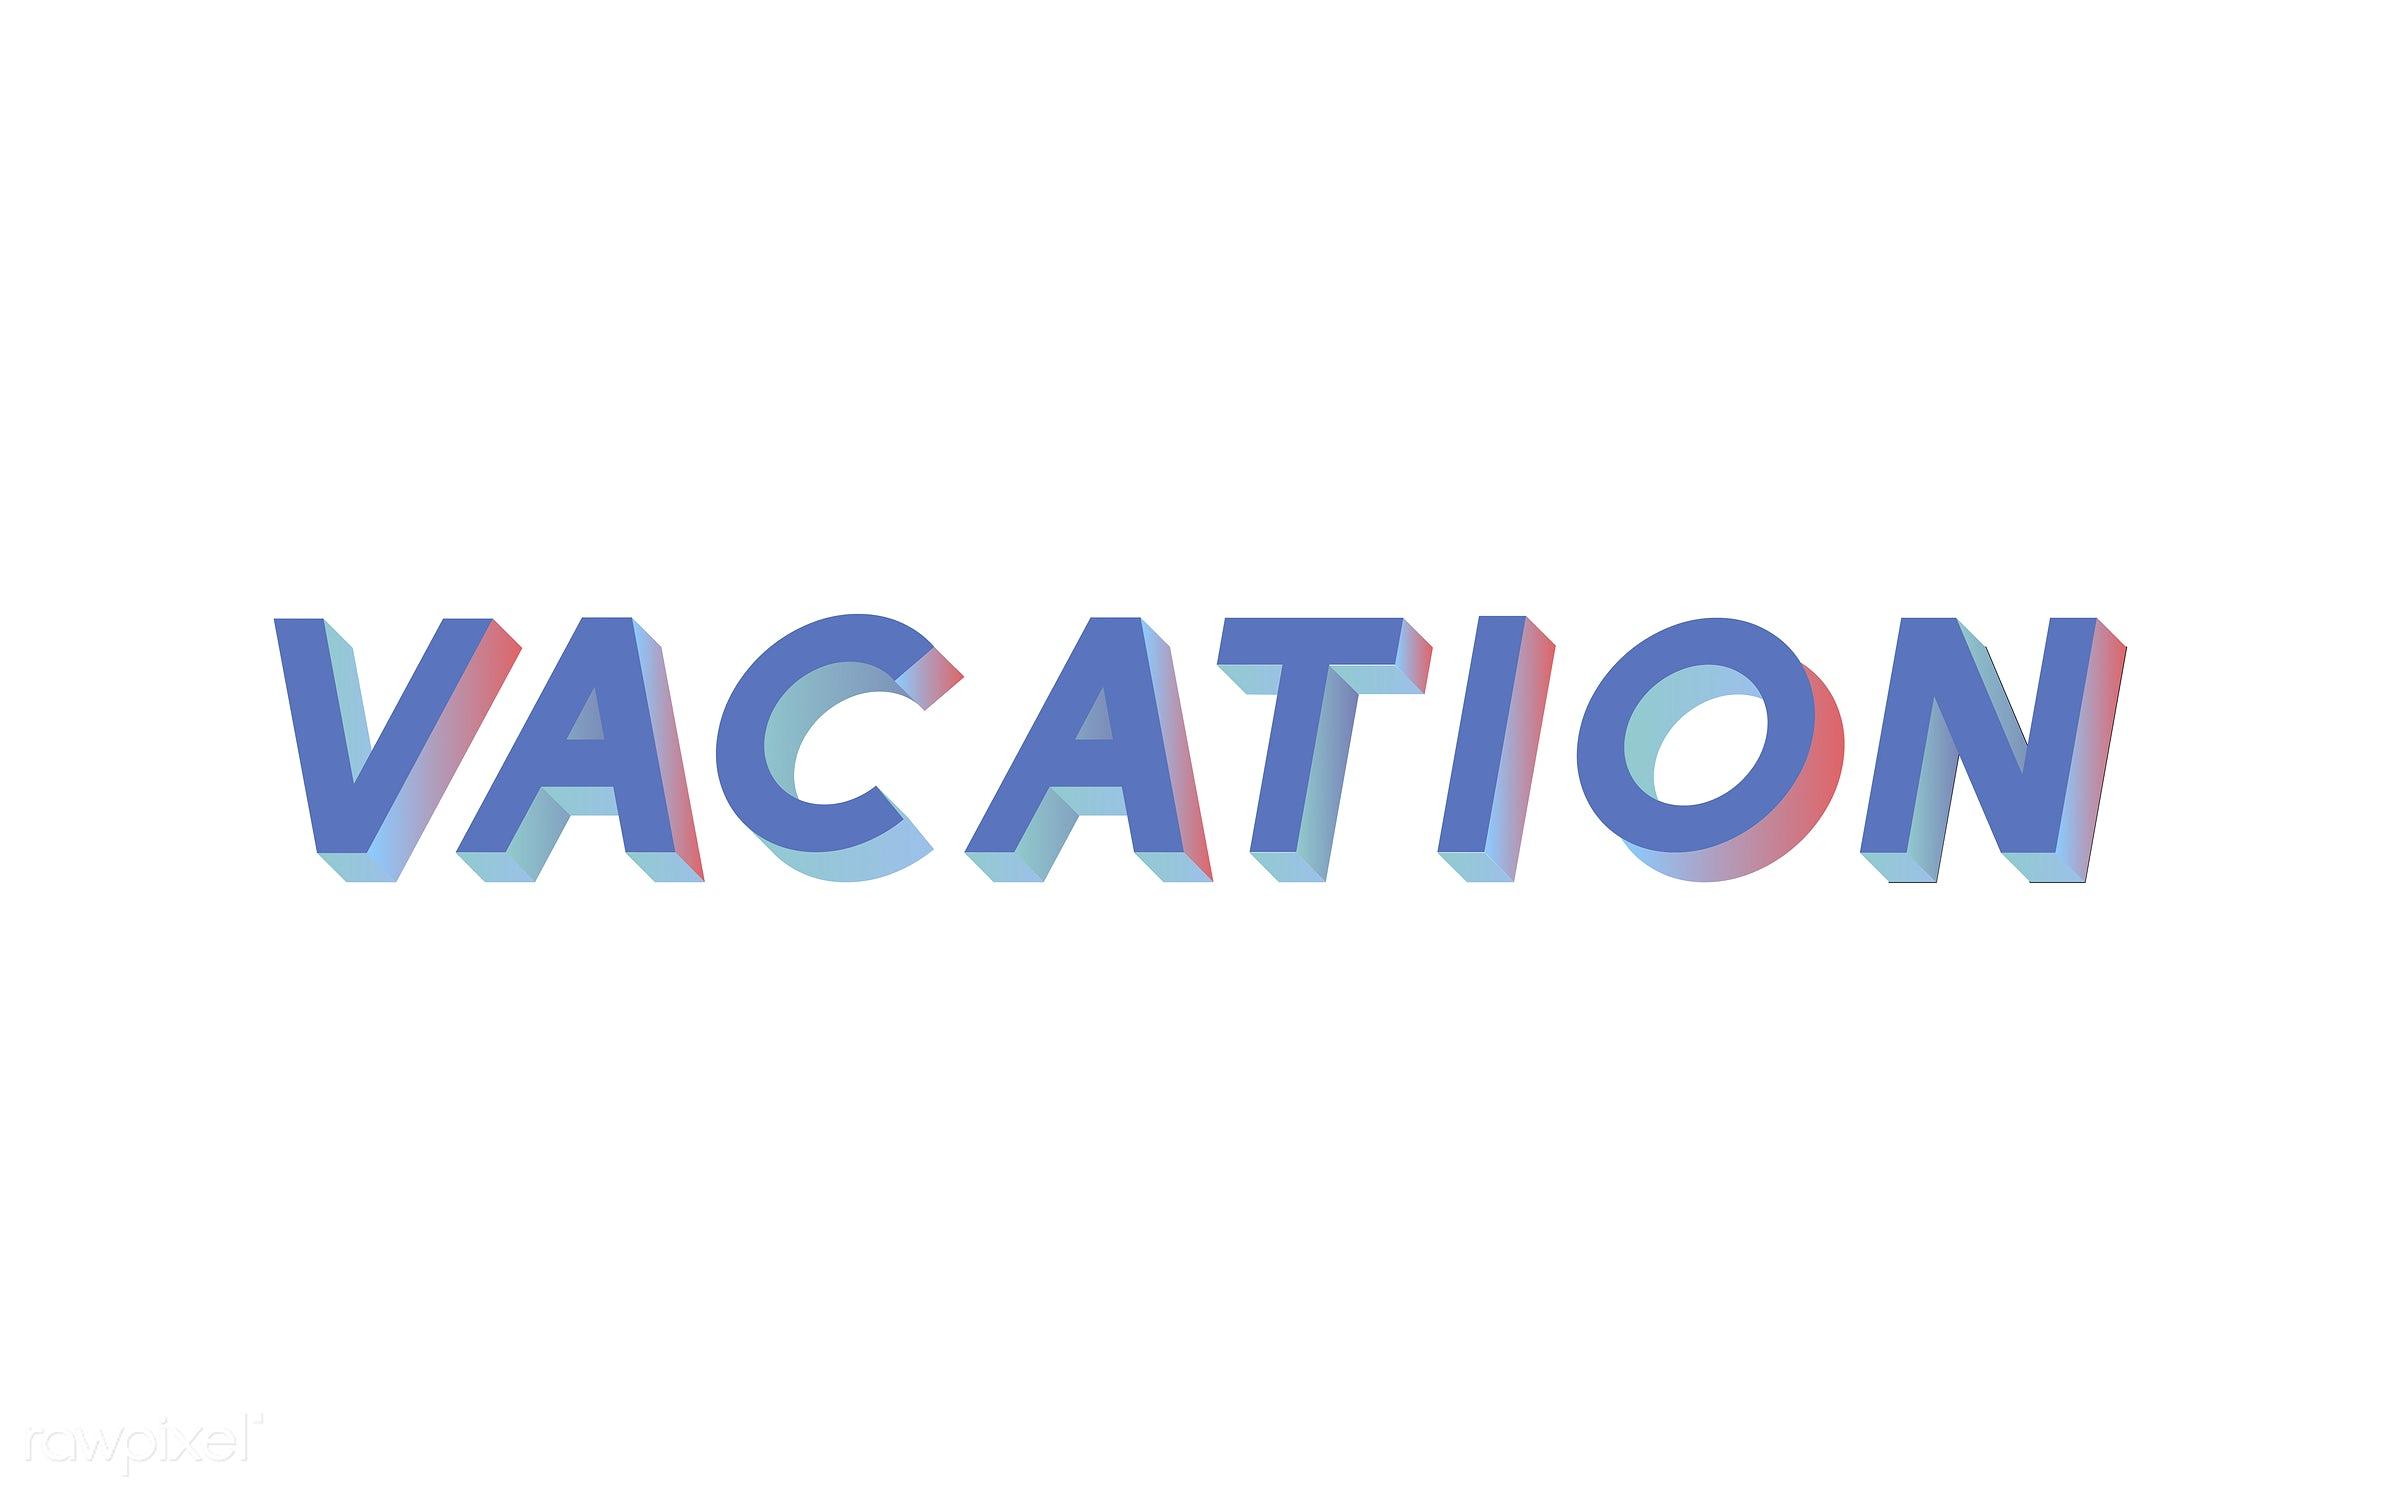 neon, colorful, 3d, three dimensional, vector, illustration, graphic, word, white, blue, holiday, vacation